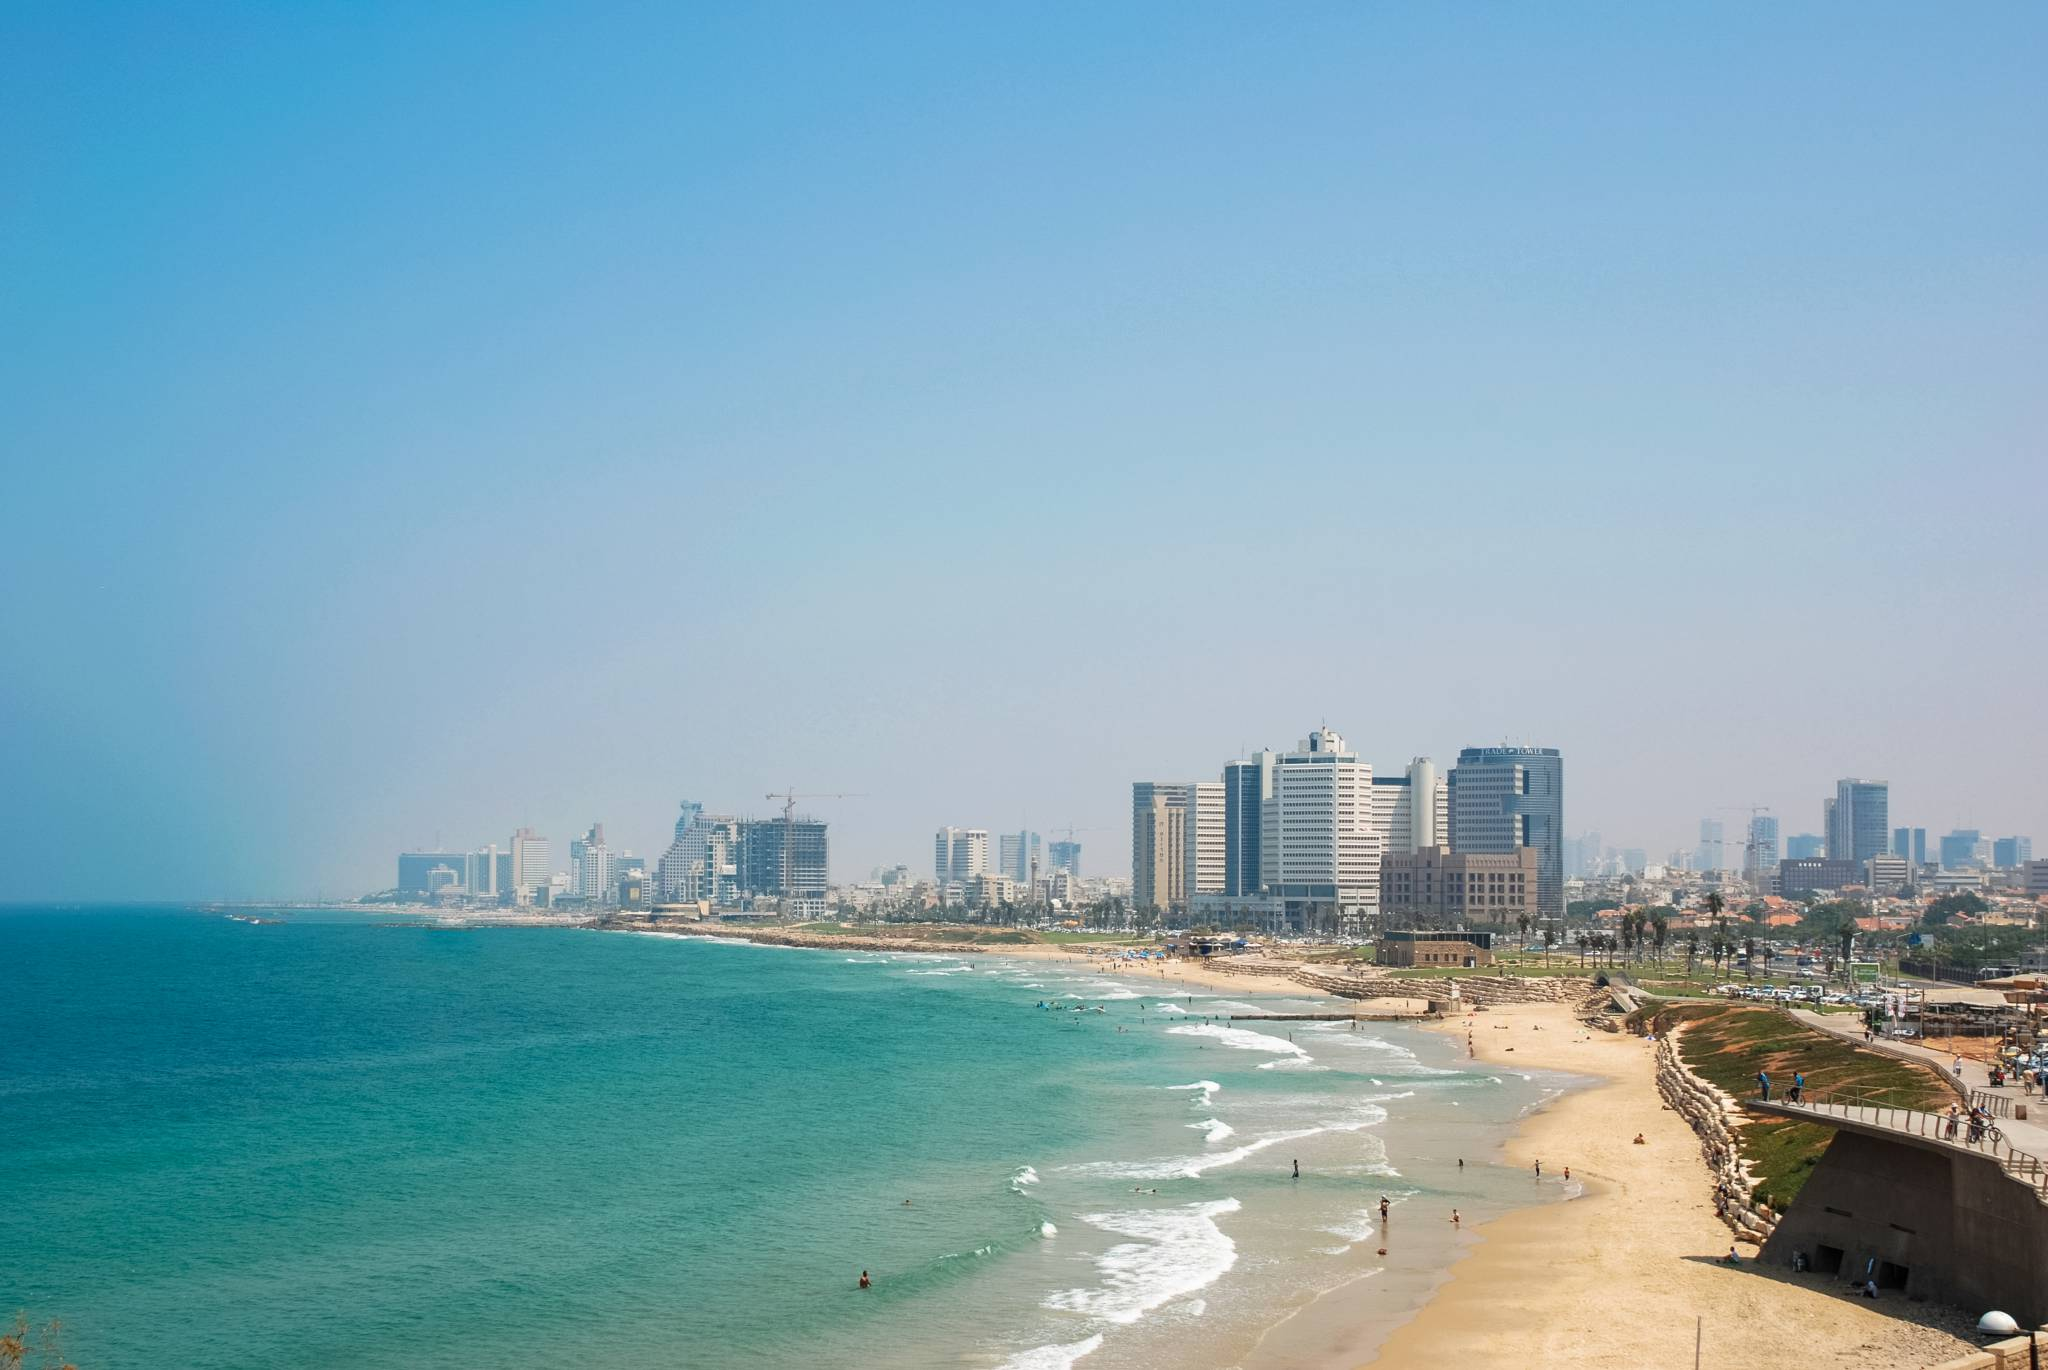 Israel Travel Guide for iPhone and iPad